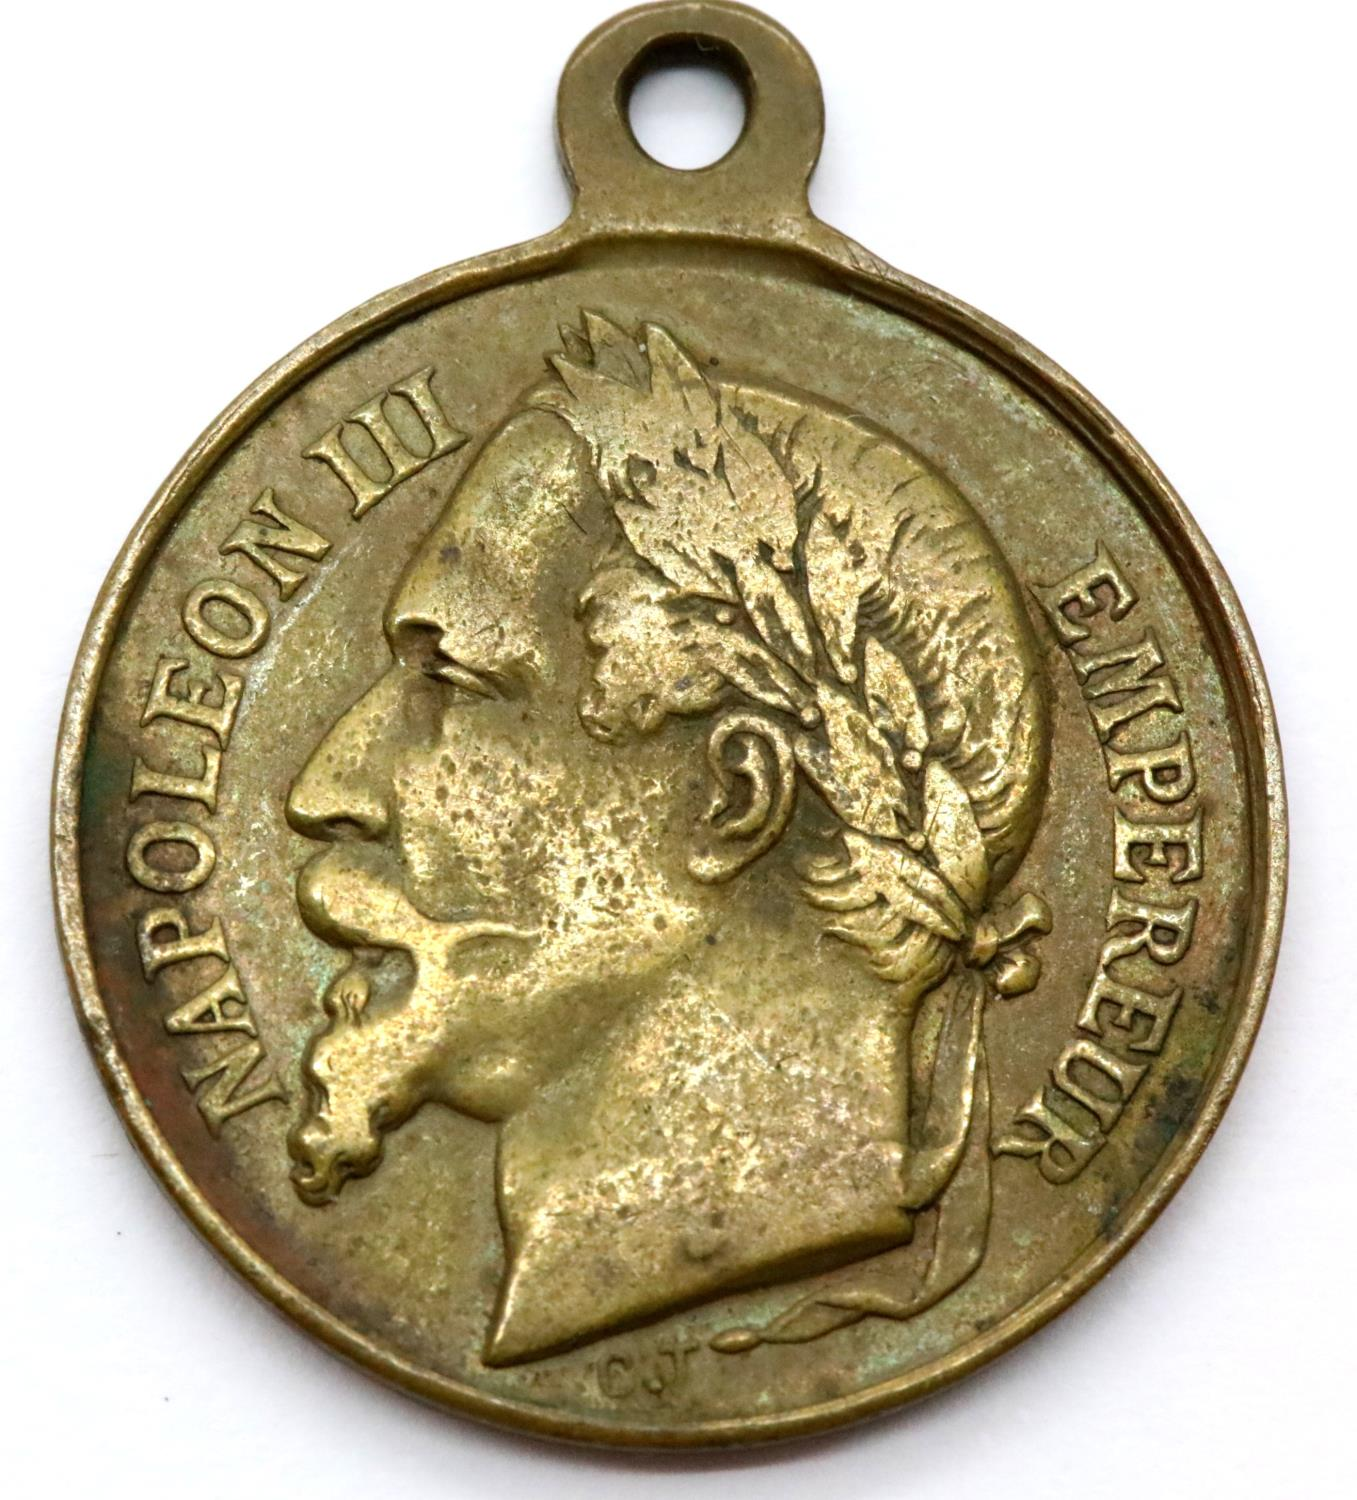 Medal to commemorate the investiture of Prince Imperial Eugene, son of Napoleon III of France. - Image 2 of 2